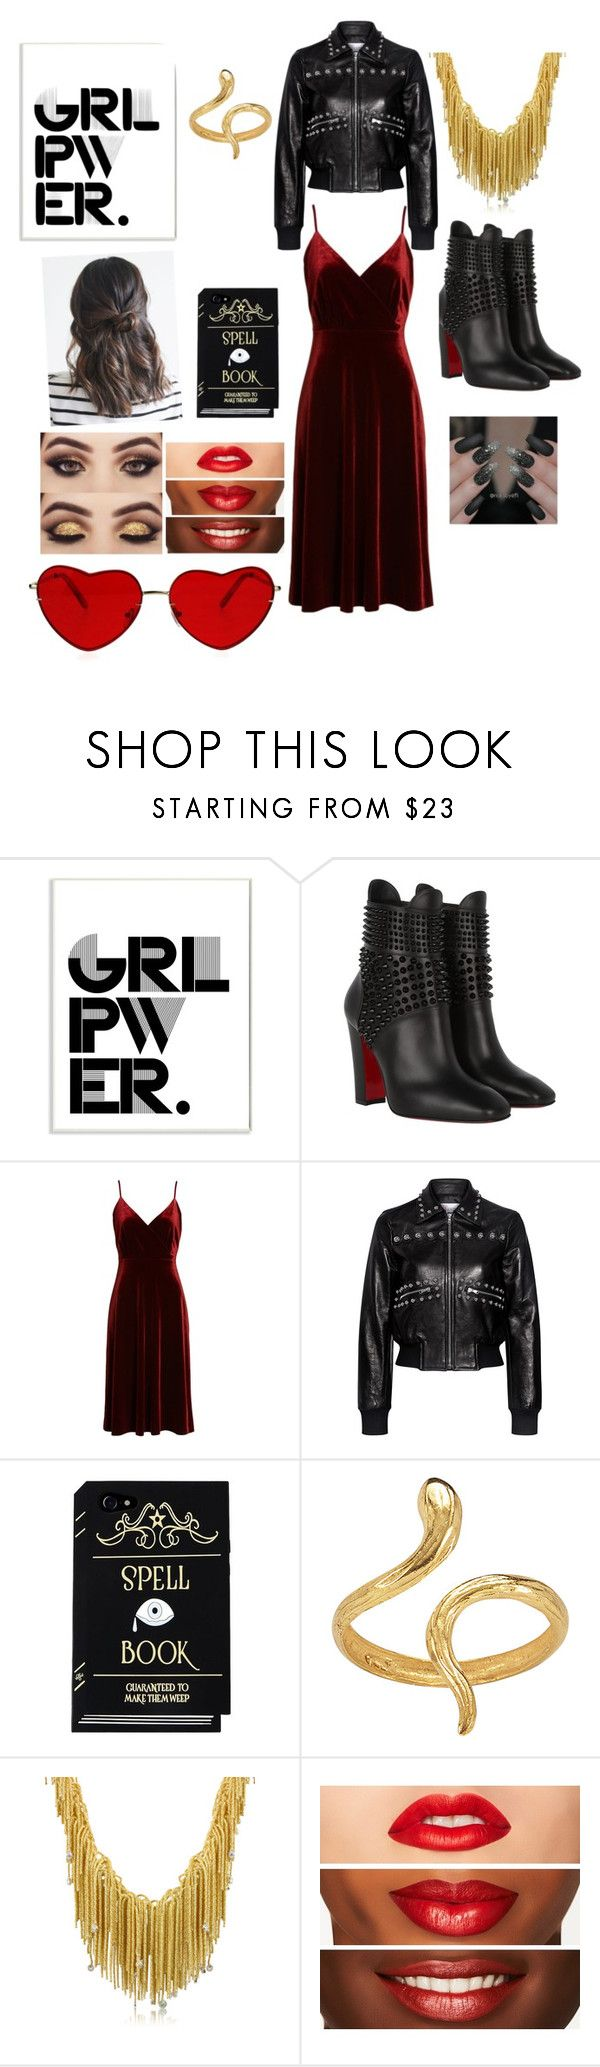 """""""who run the world? GIRLS!"""" by helana-gilstrap ❤ liked on Polyvore featuring Stupell, Christian Louboutin, Ali & Jay, RED Valentino, Madina Visconti di Modrone, Orlando Orlandini, girlpower and powerlook"""